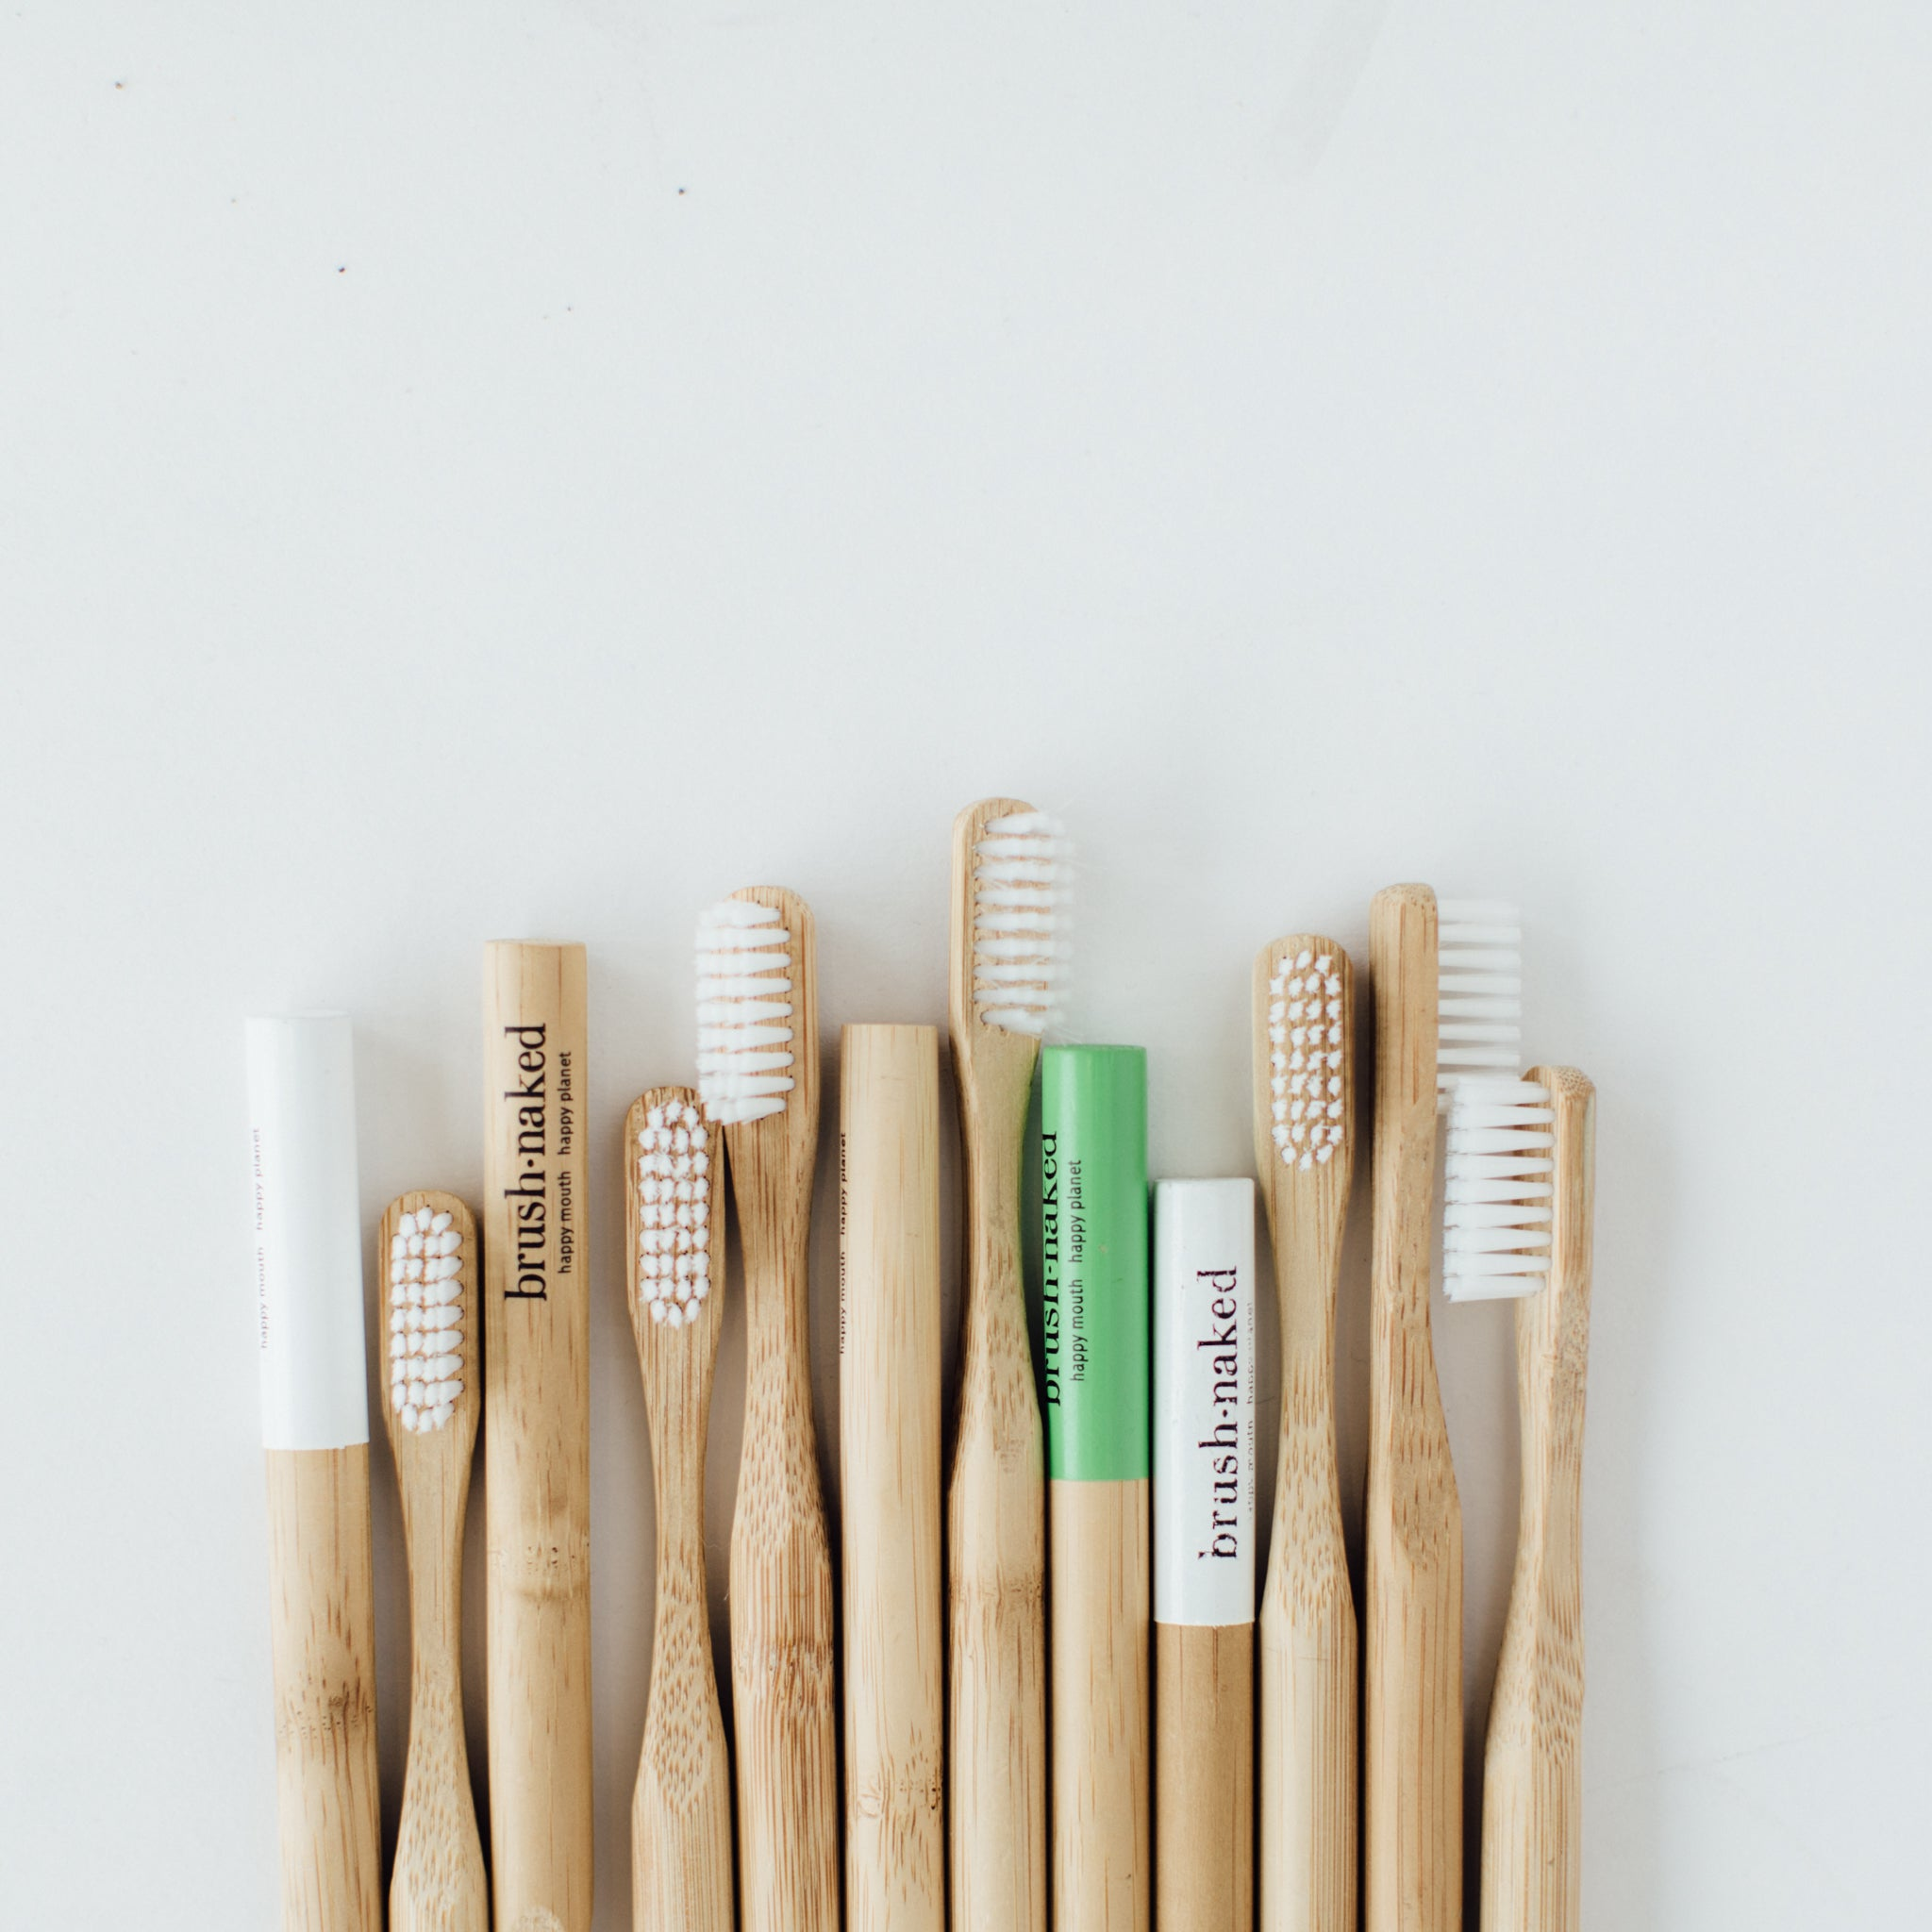 Adult Soft Toothbrush with Biodegradable Plant-Based Bristles - 12-Pack